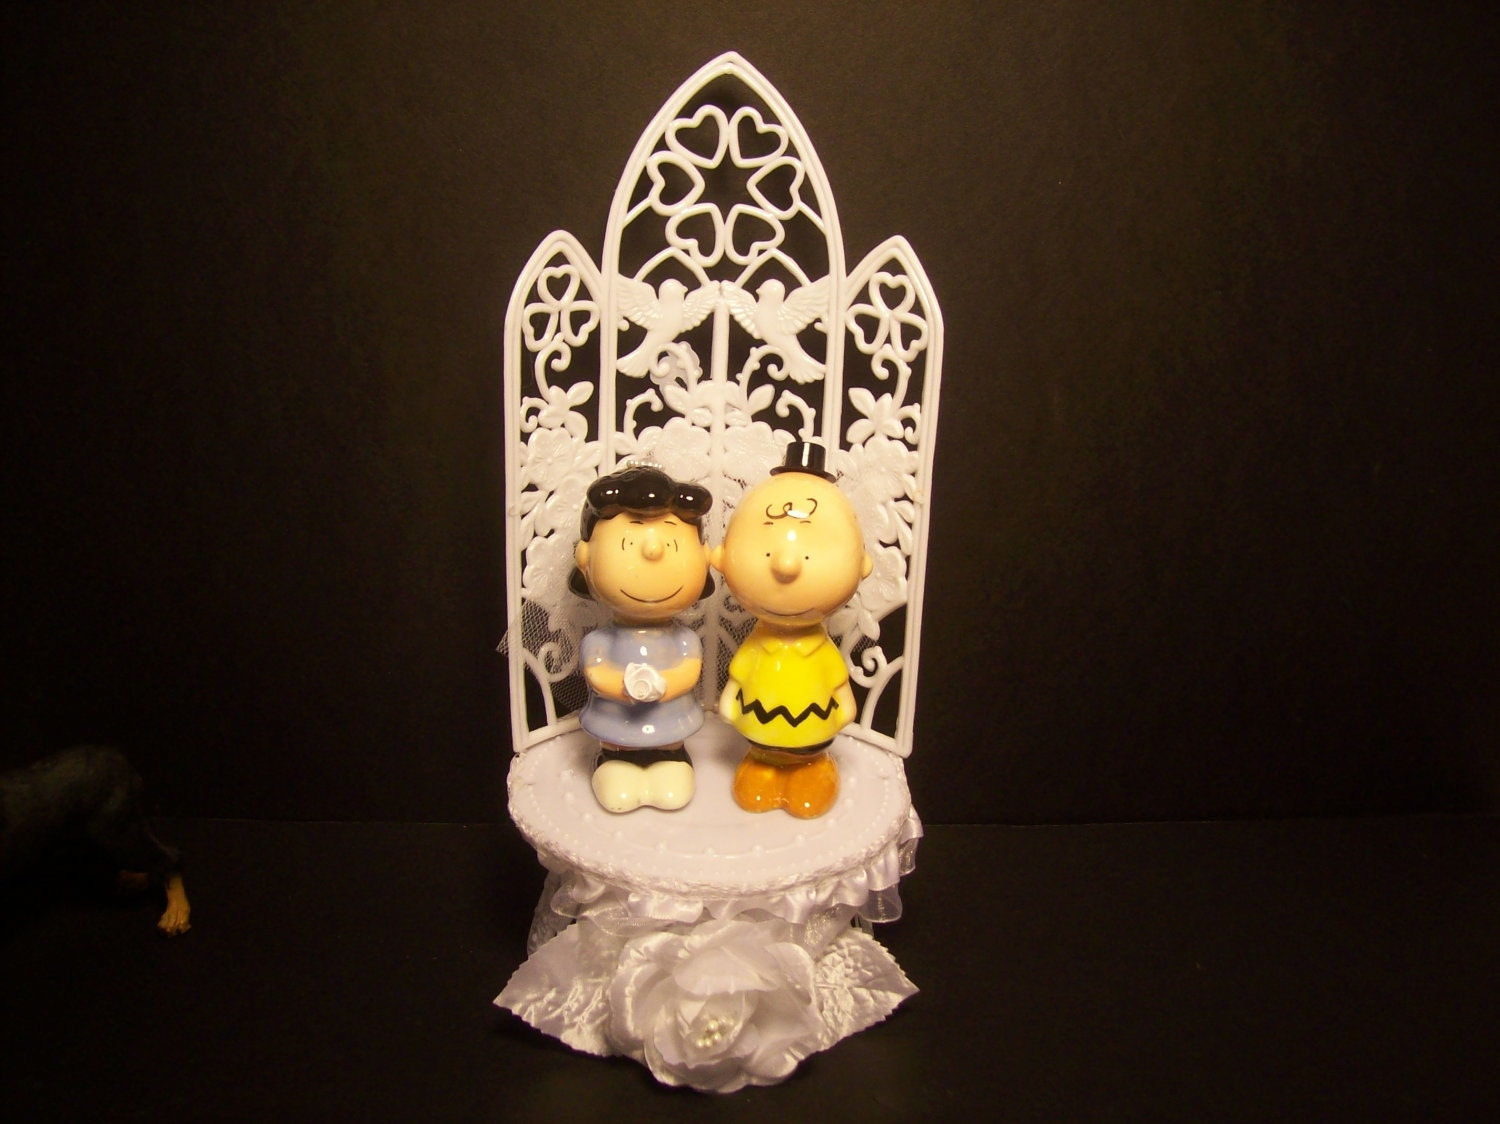 charlie brown wedding cake topper brown amp and groom wedding cake topper 12505